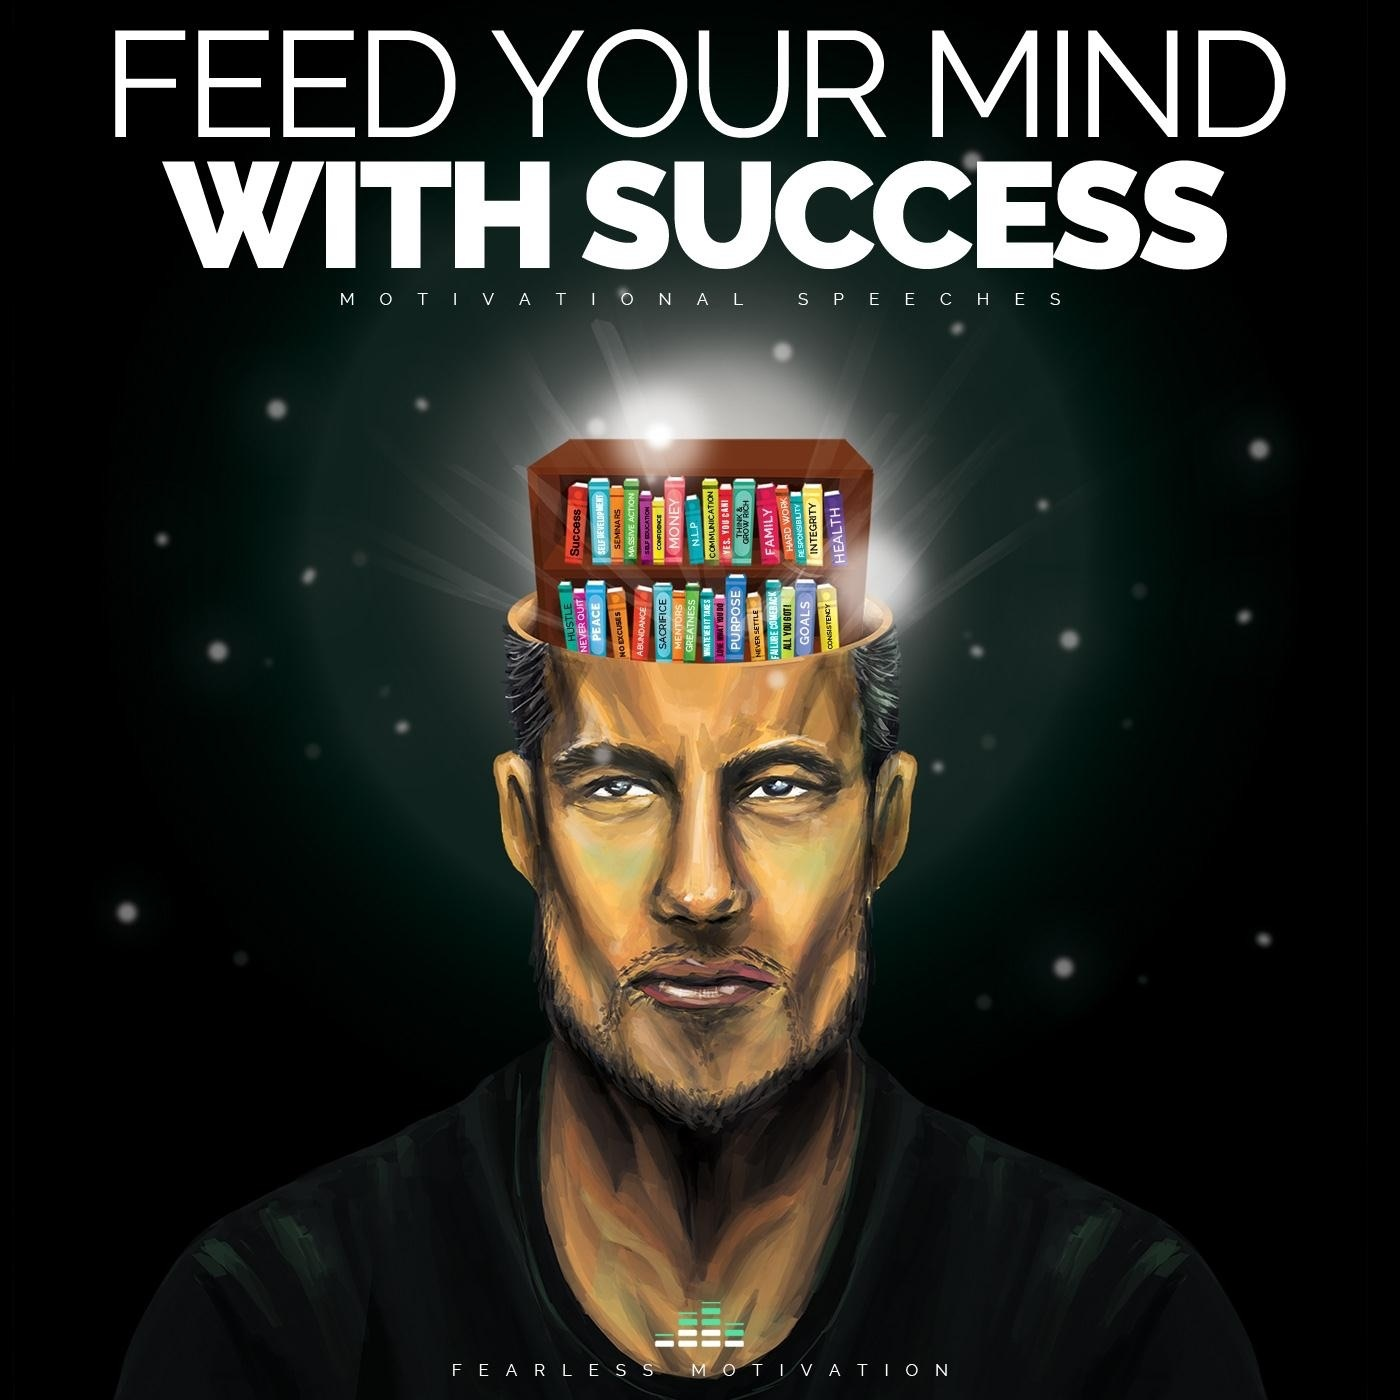 Download album: Feed Your Mind With Success (Motivational